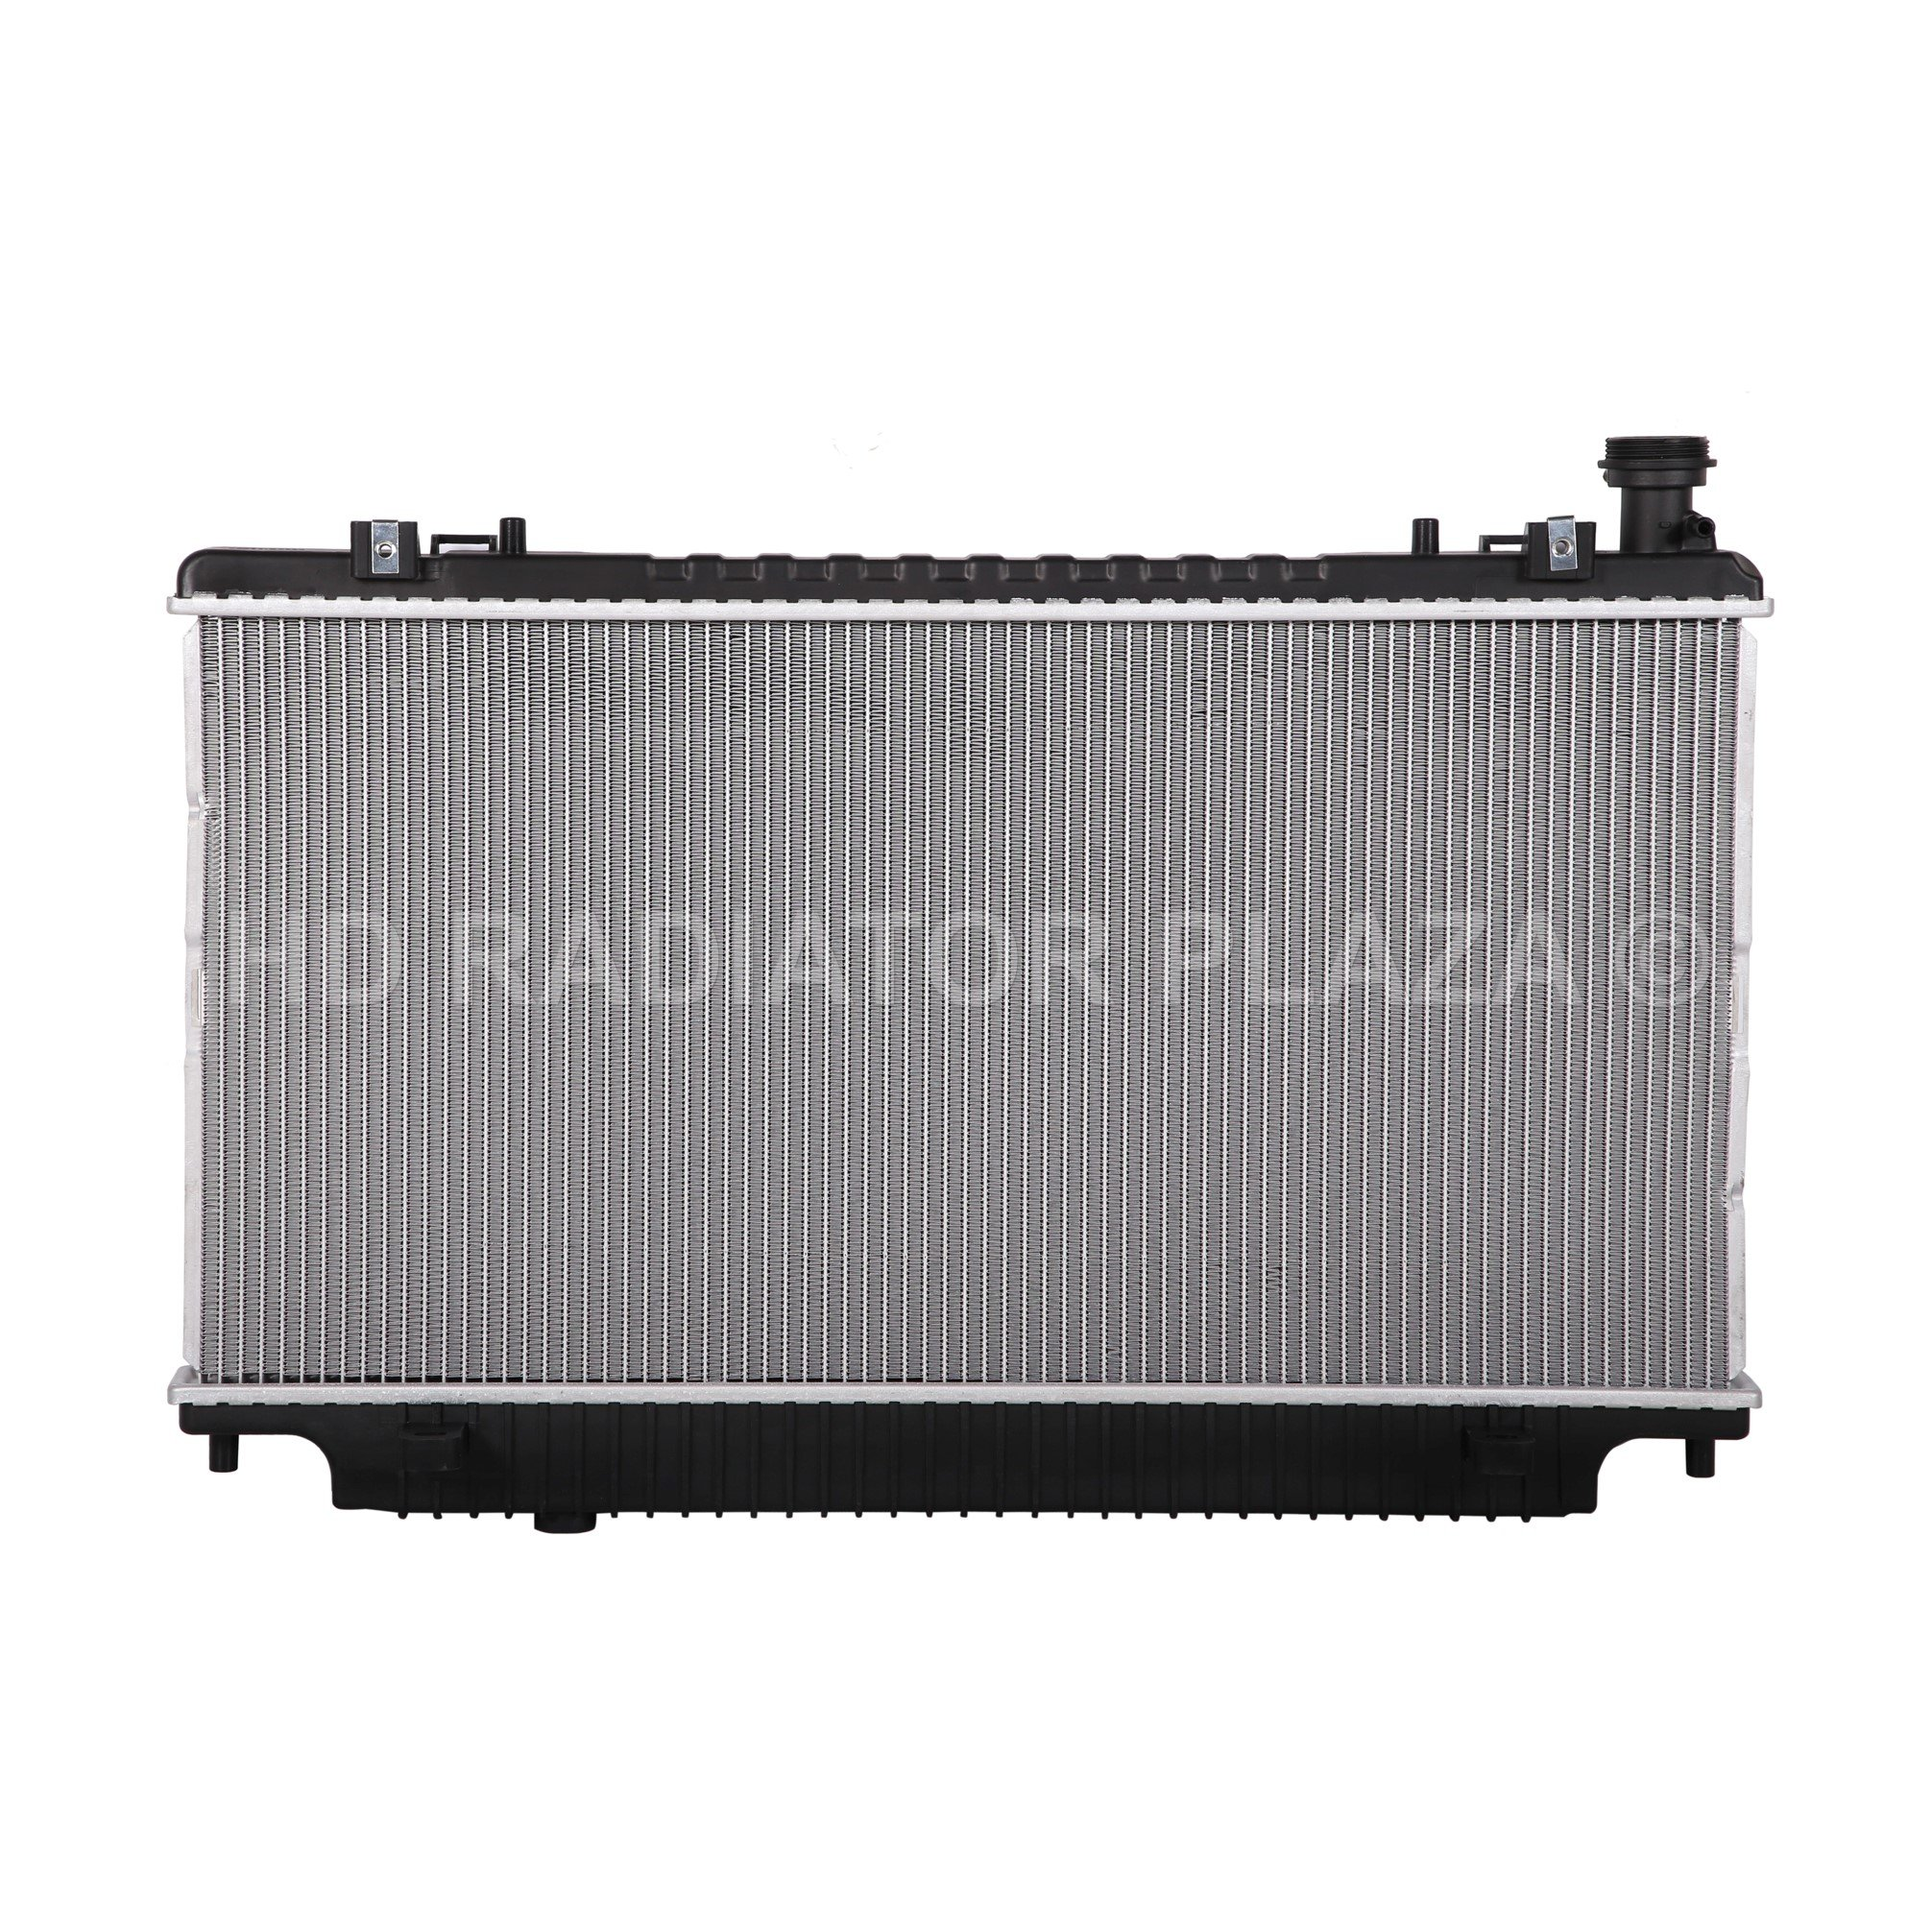 Radiator for 08-11 Pontiac G8 / 2011 Chevy Caprice